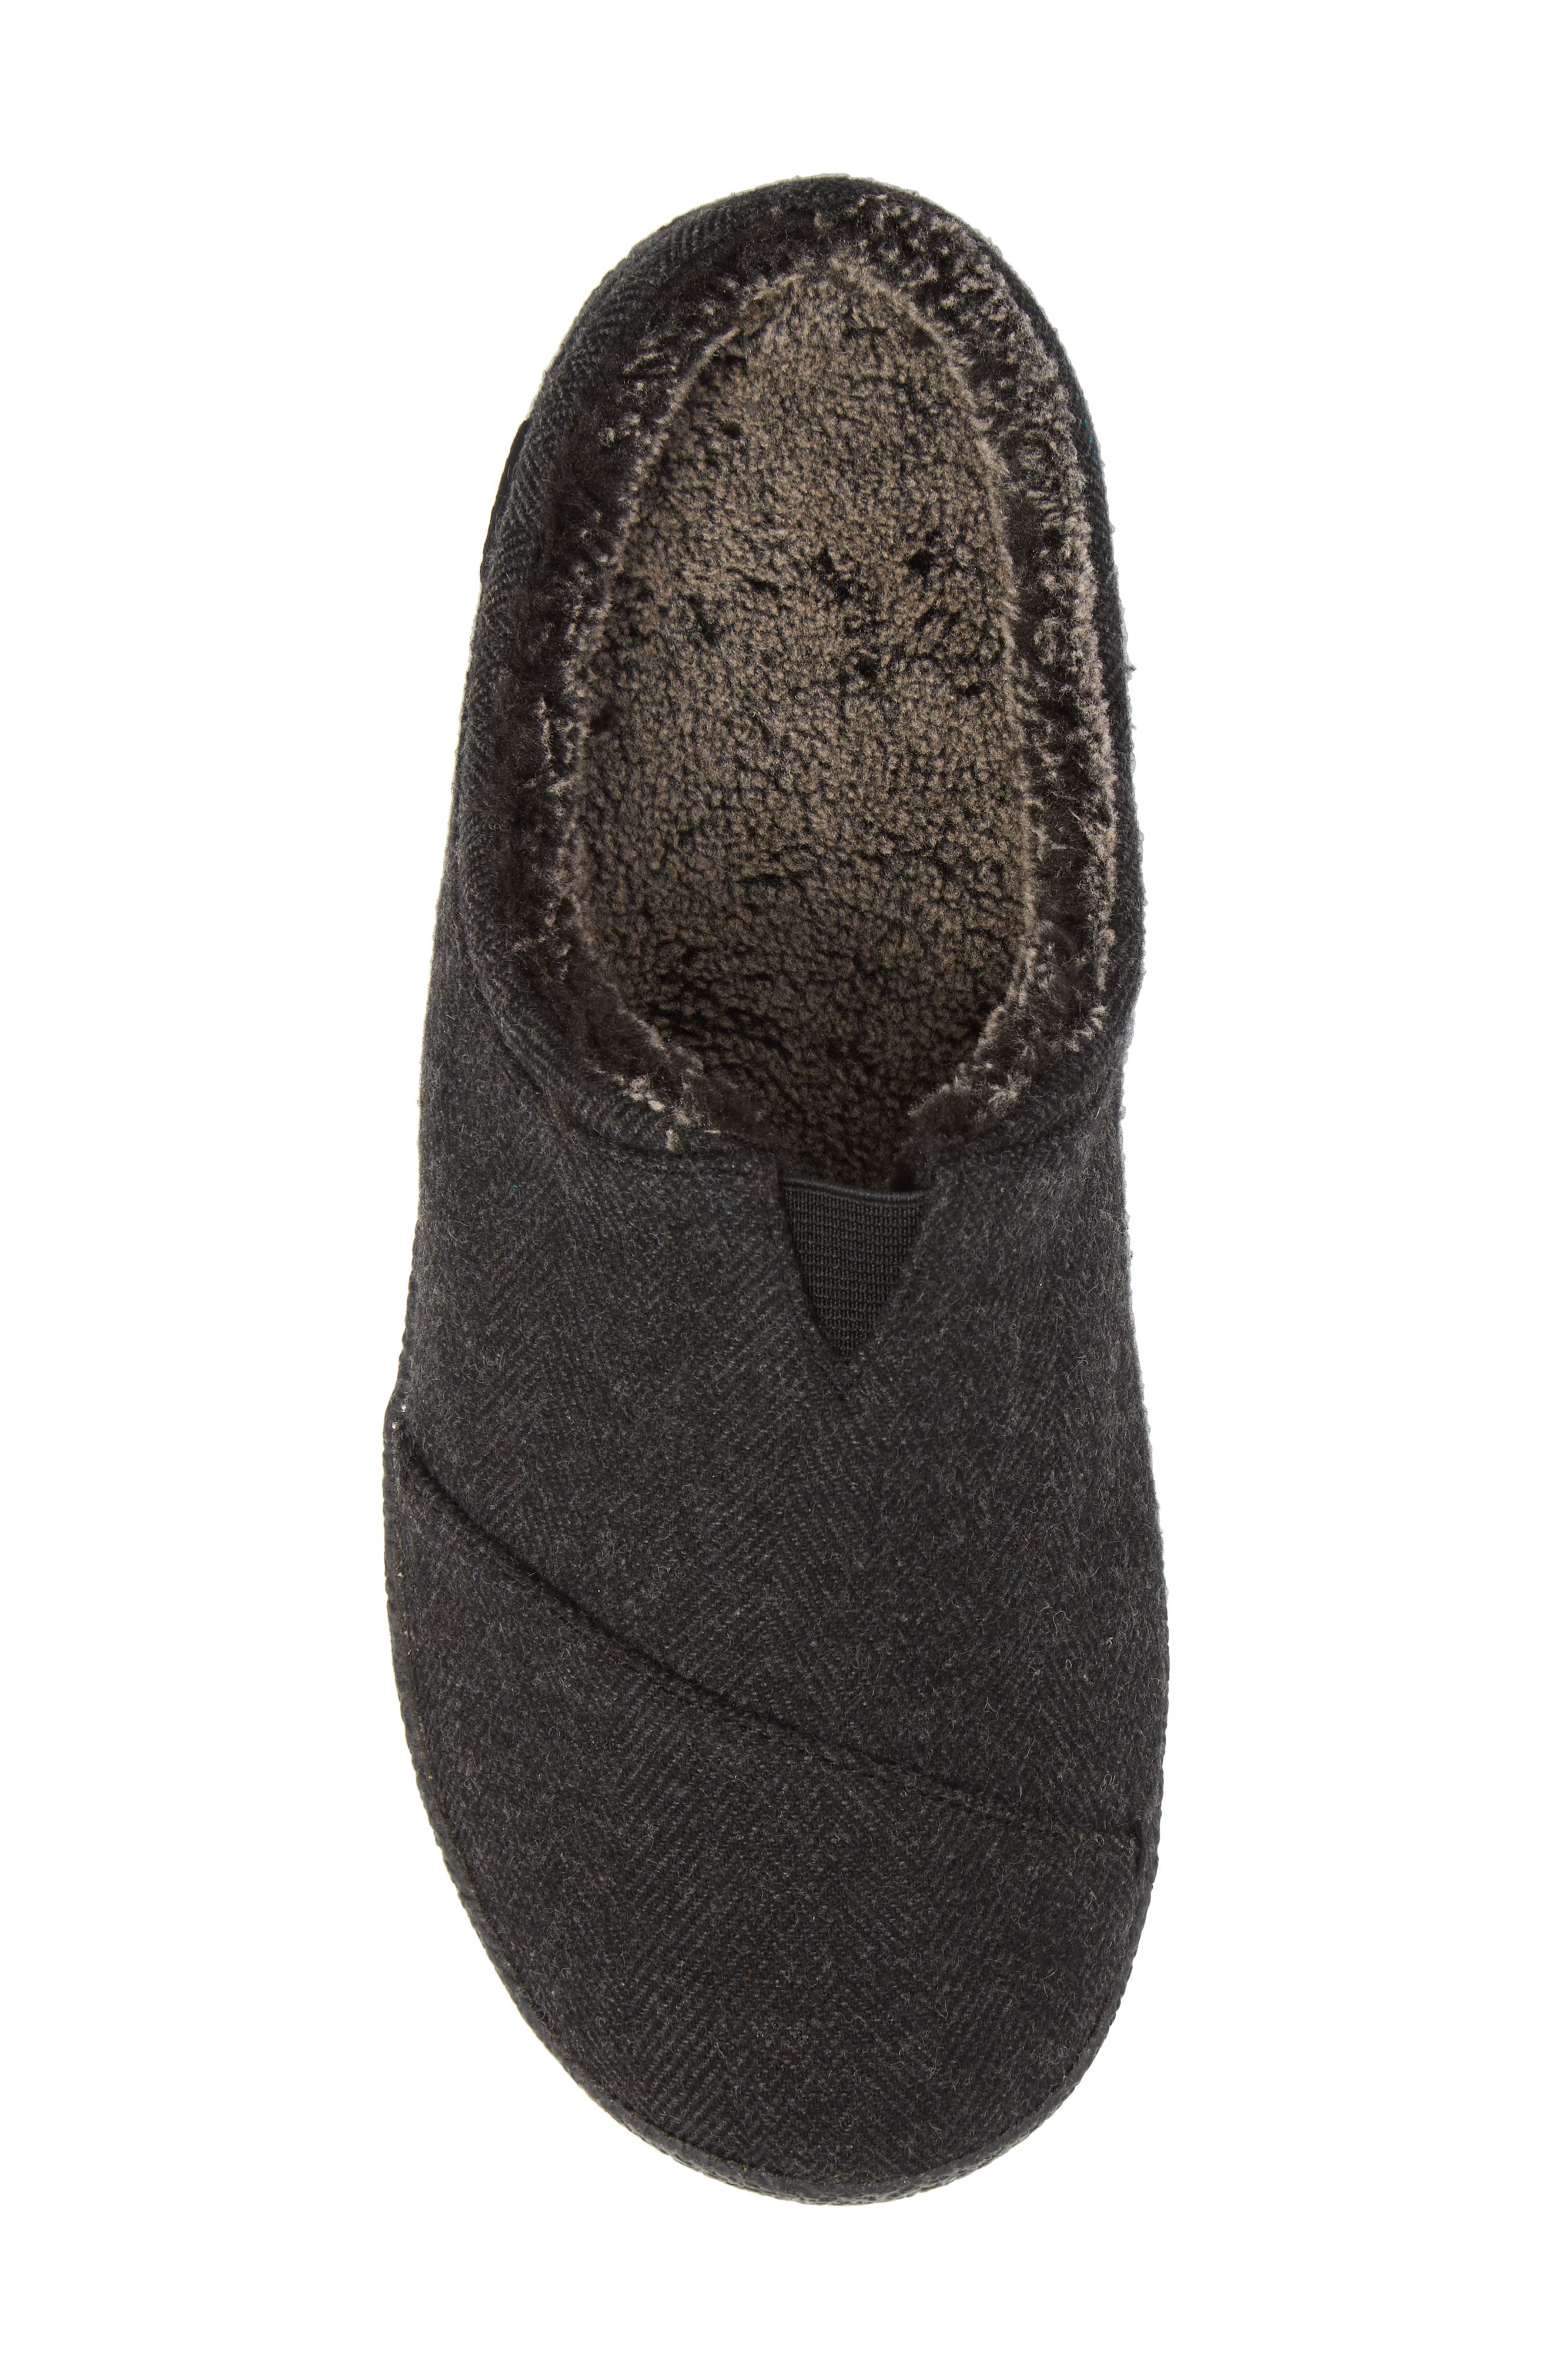 Berkeley Slipper with Faux Fur Lining,                             Alternate thumbnail 5, color,                             Black